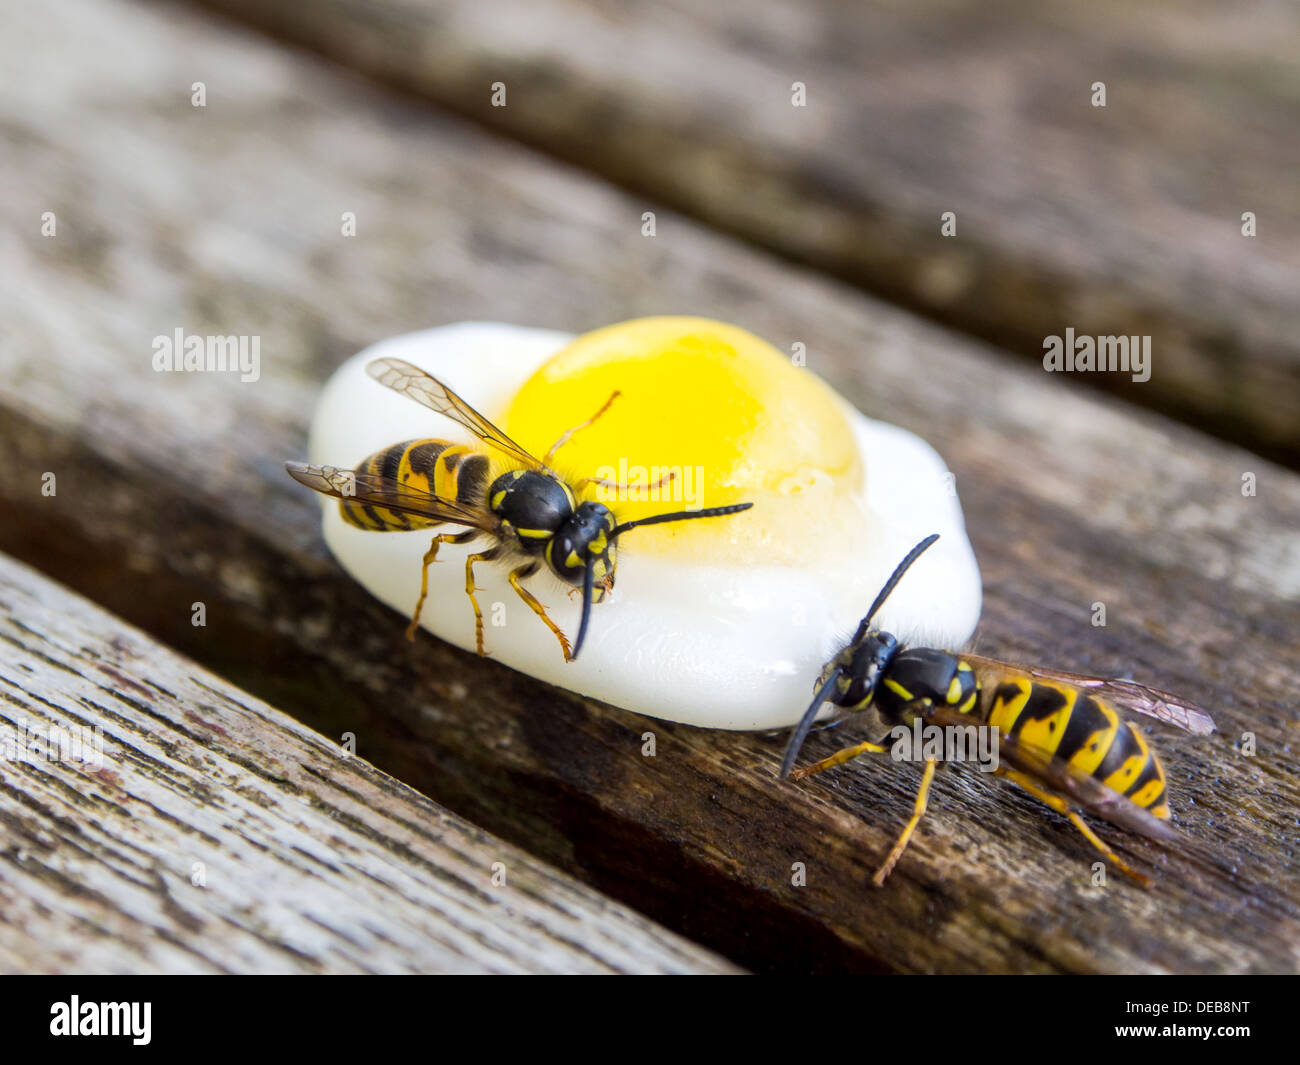 two-wasps-feeding-on-an-egg-shaped-sweet